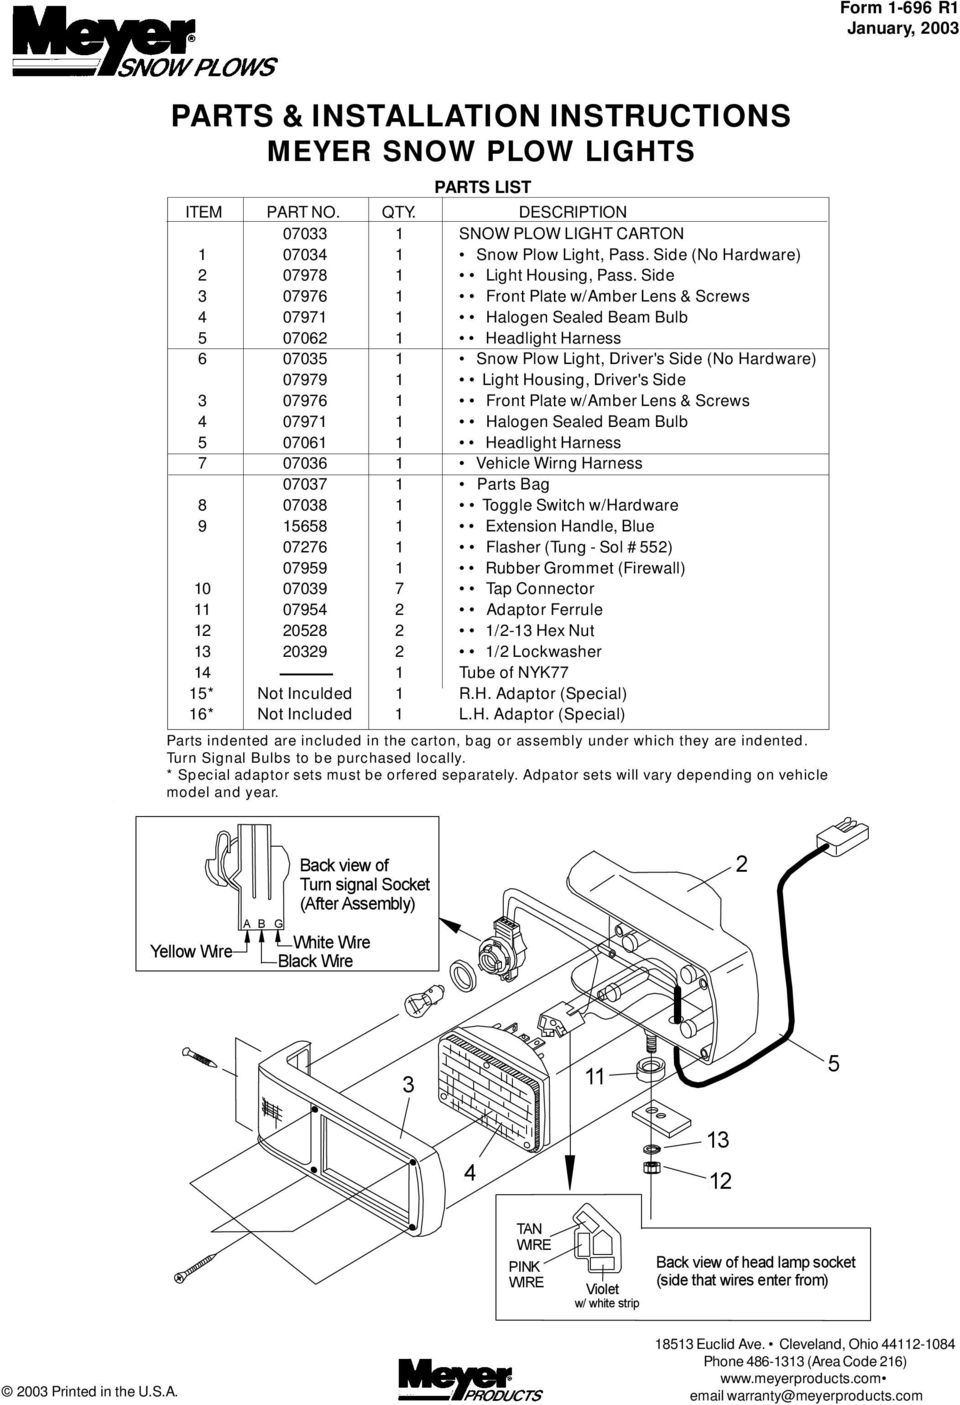 medium resolution of parts installation instructions meyer snow plow lights pdf snow plow light wiring harness w flasher headlight switch for lights